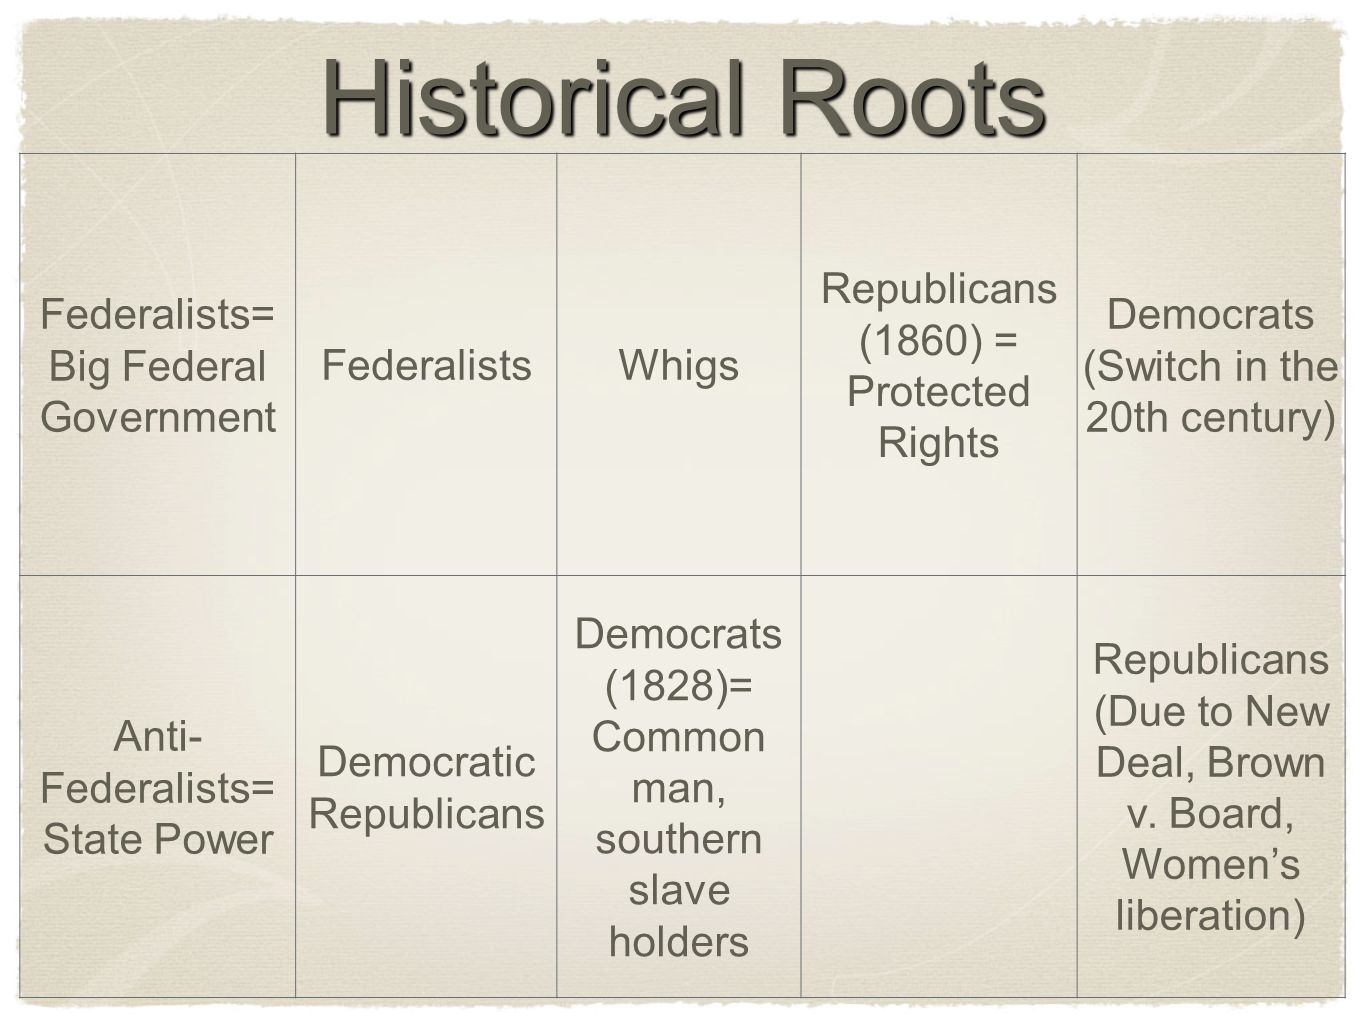 Historical Roots Federalists= Big Federal Government Federalists Whigs